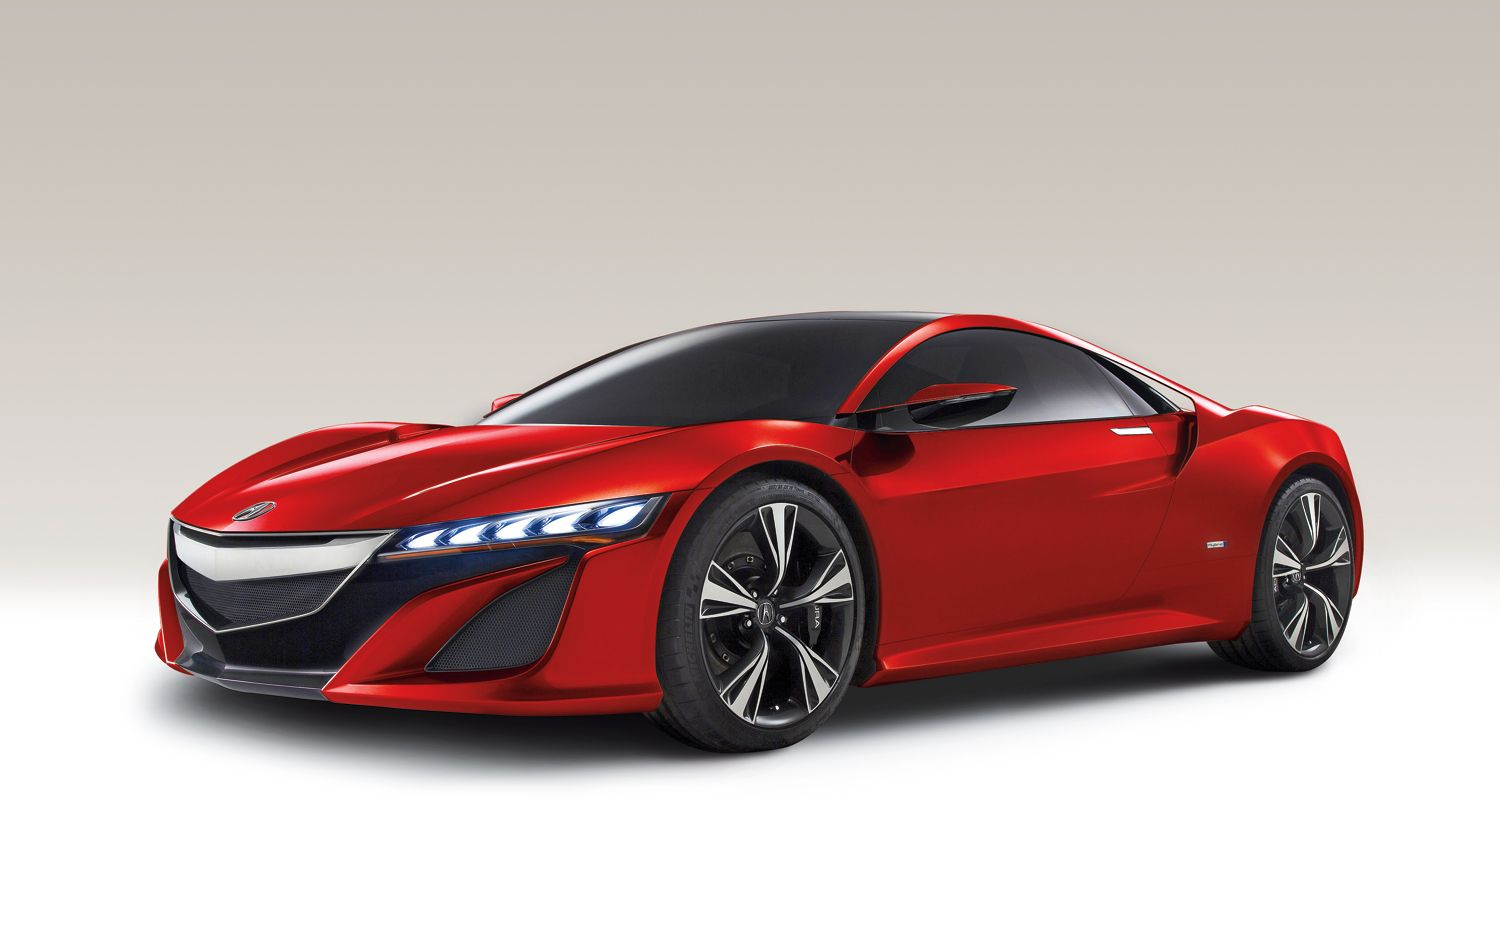 We Hear: Acura's Future Includes TL Hybrid with 45 MPG, No ILX Coupe ...